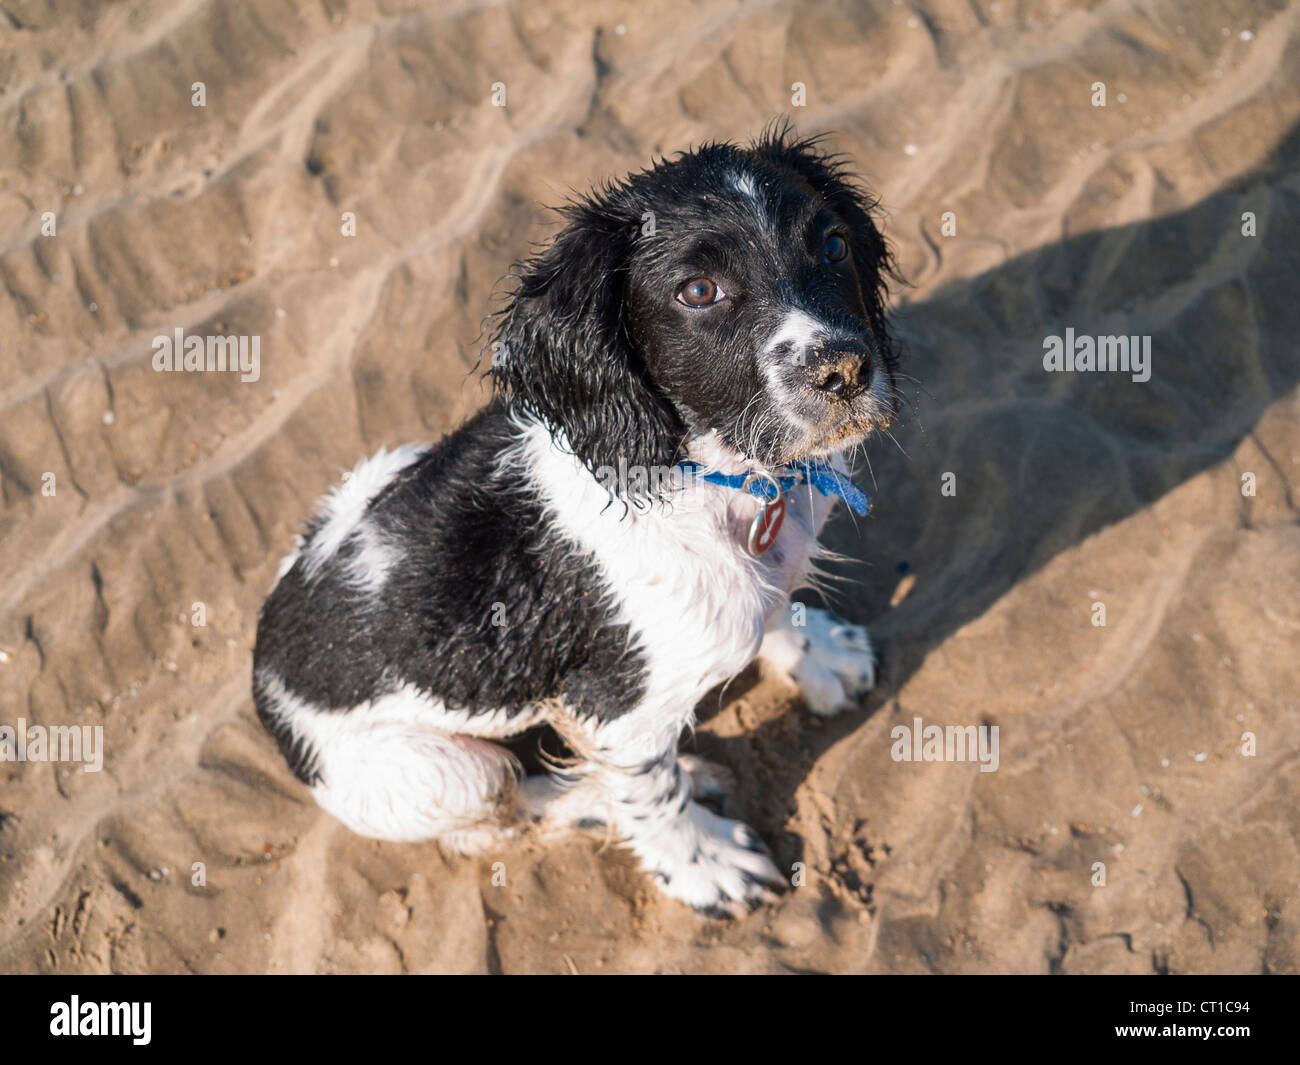 Cute Puppy Springer Spaniels High Resolution Stock Photography And Images Alamy